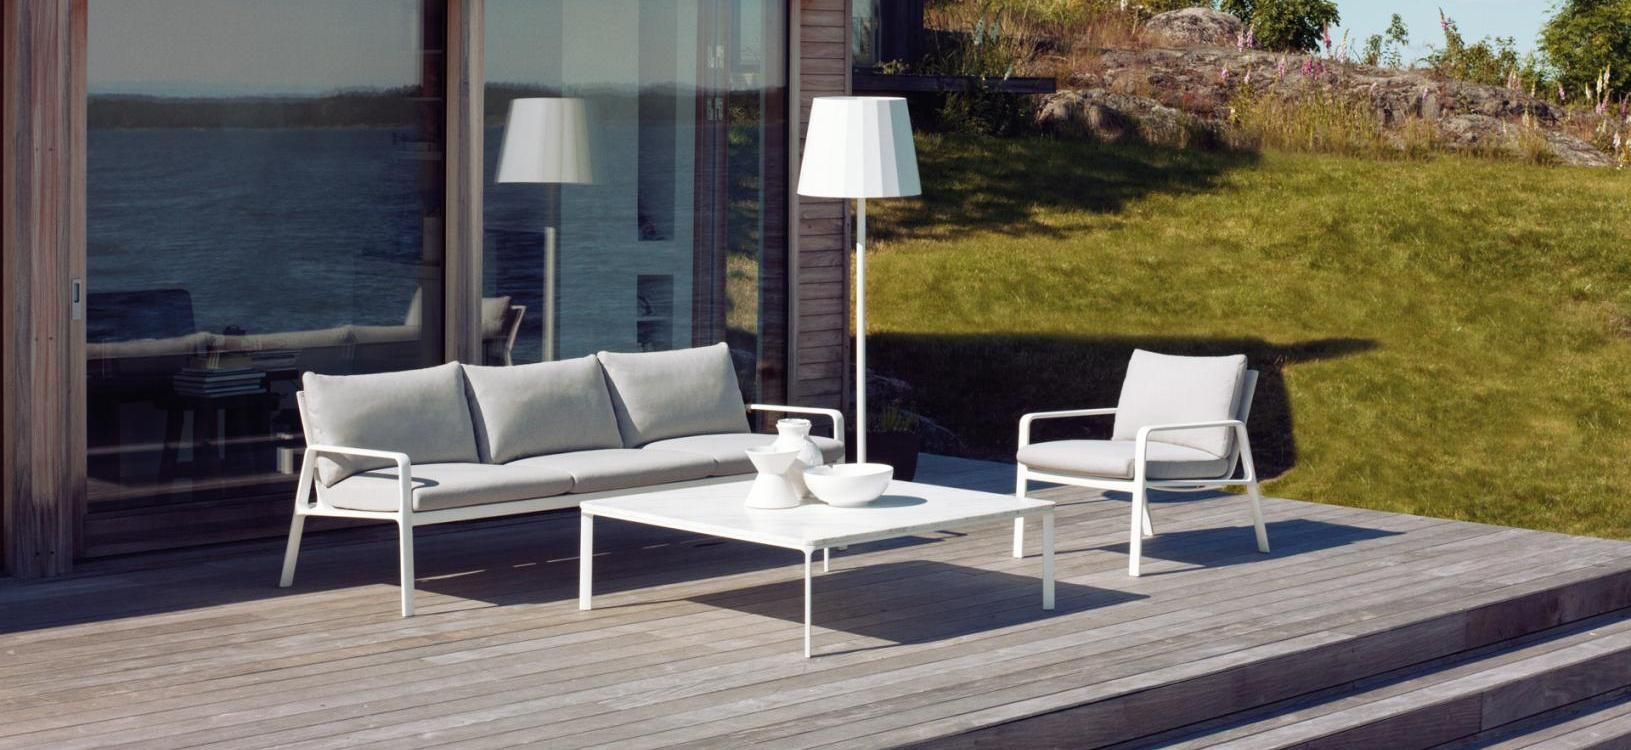 Kettal - Park Life clean lines- great outdoor furniture | Pools ...